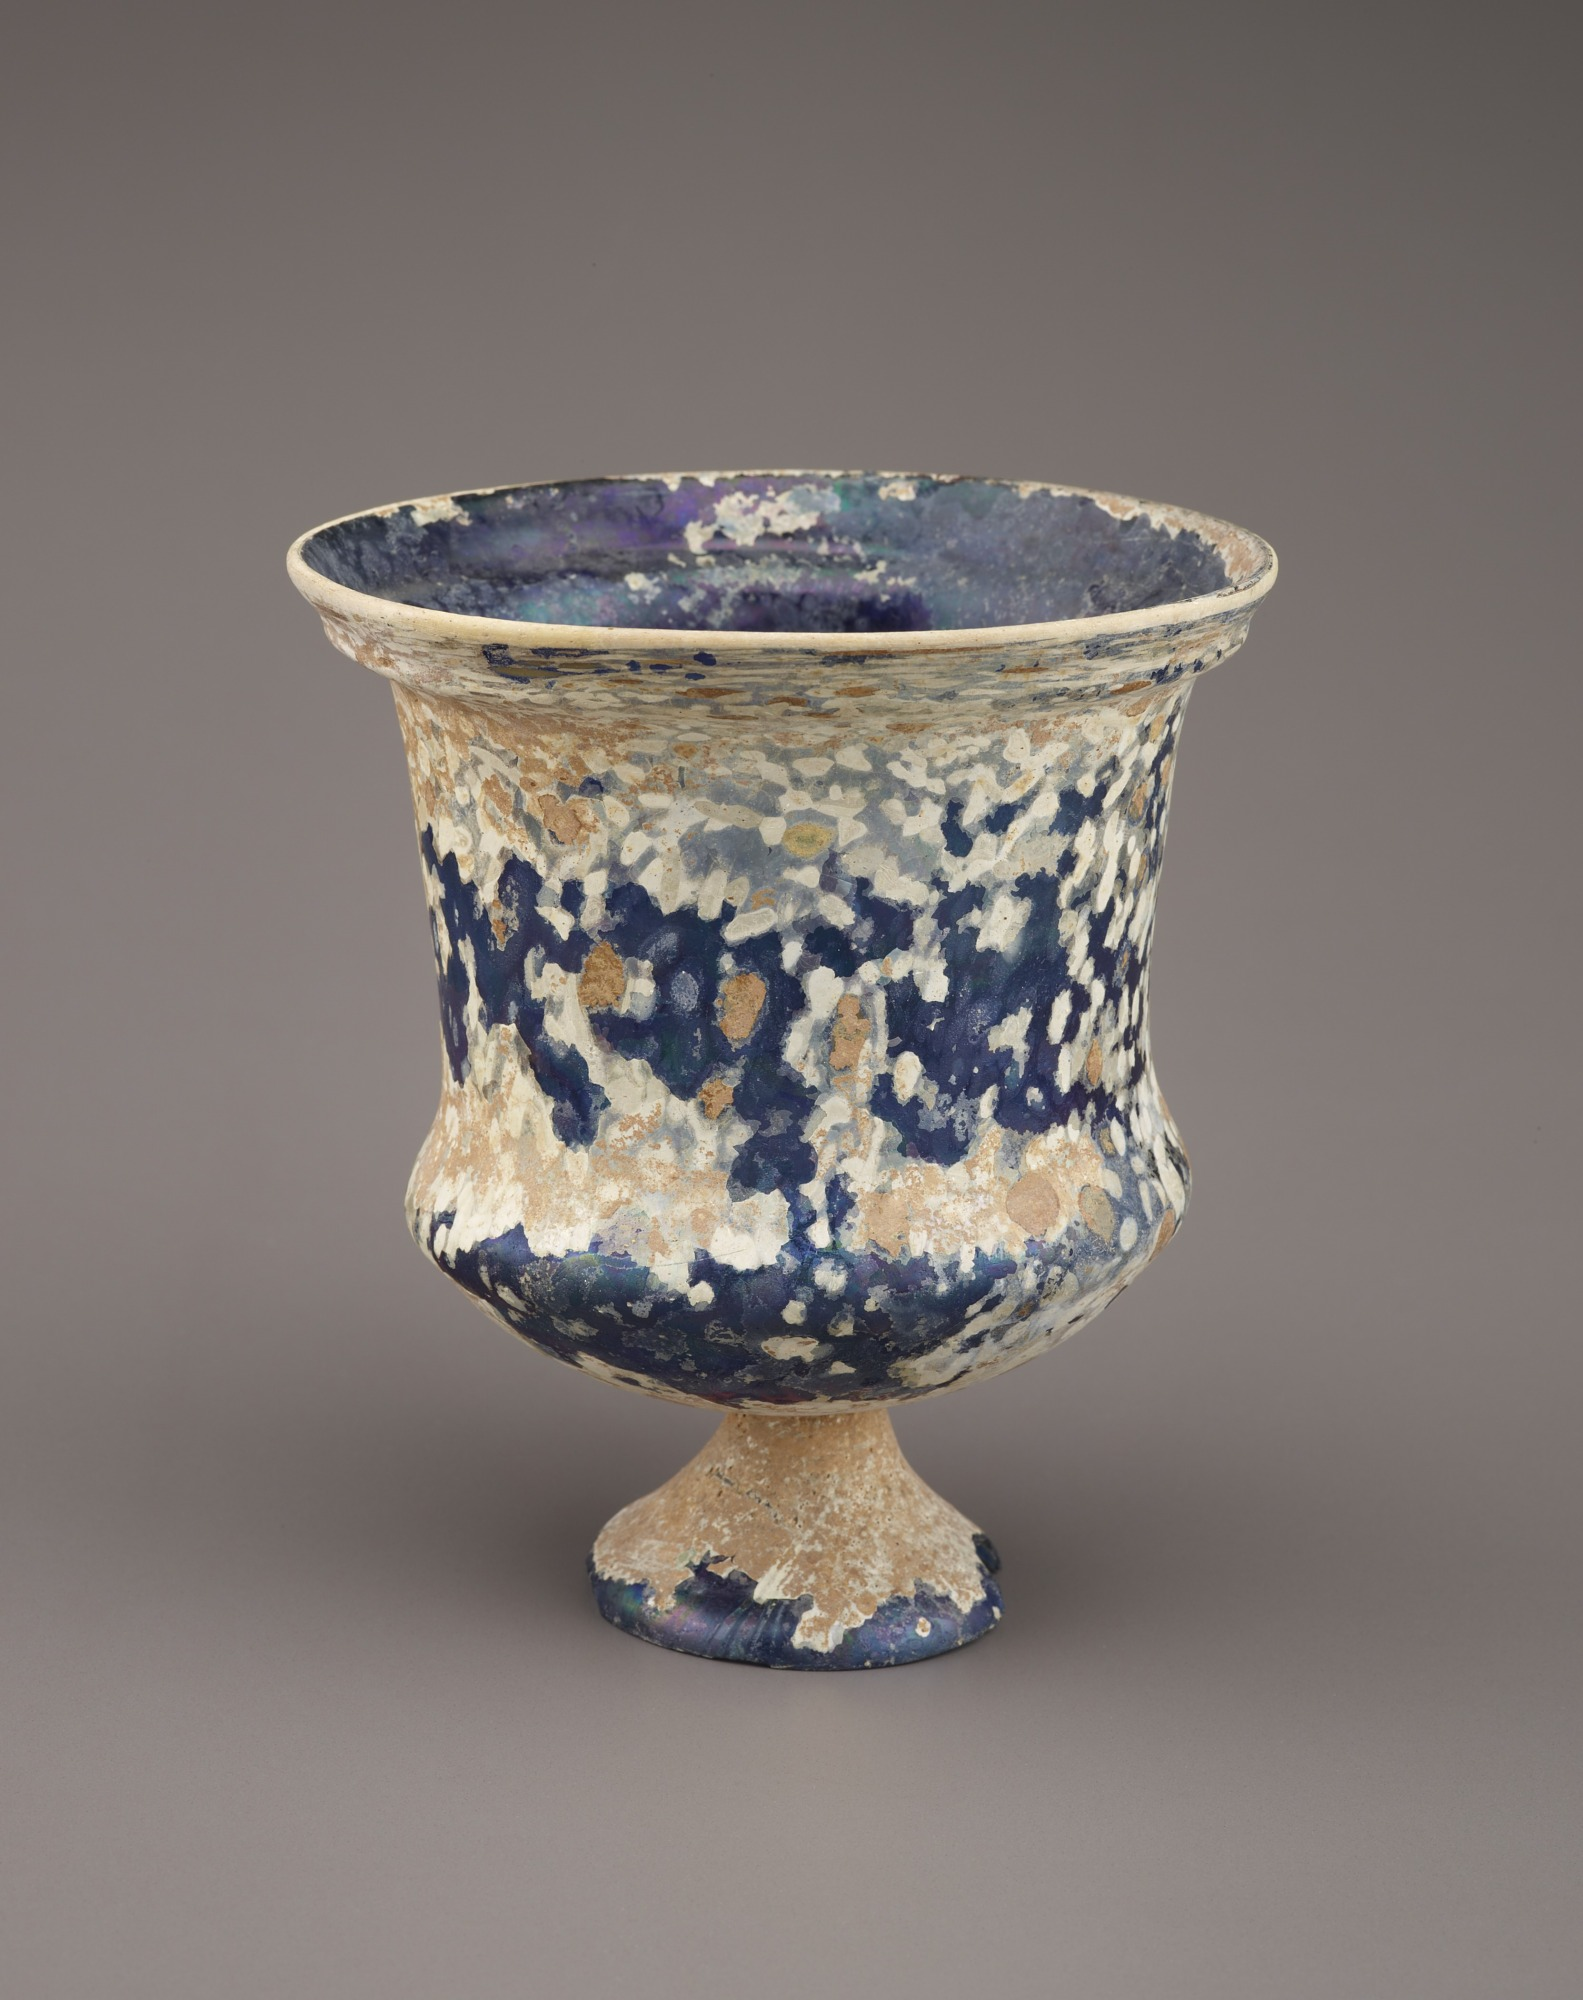 Footed drinking vessel